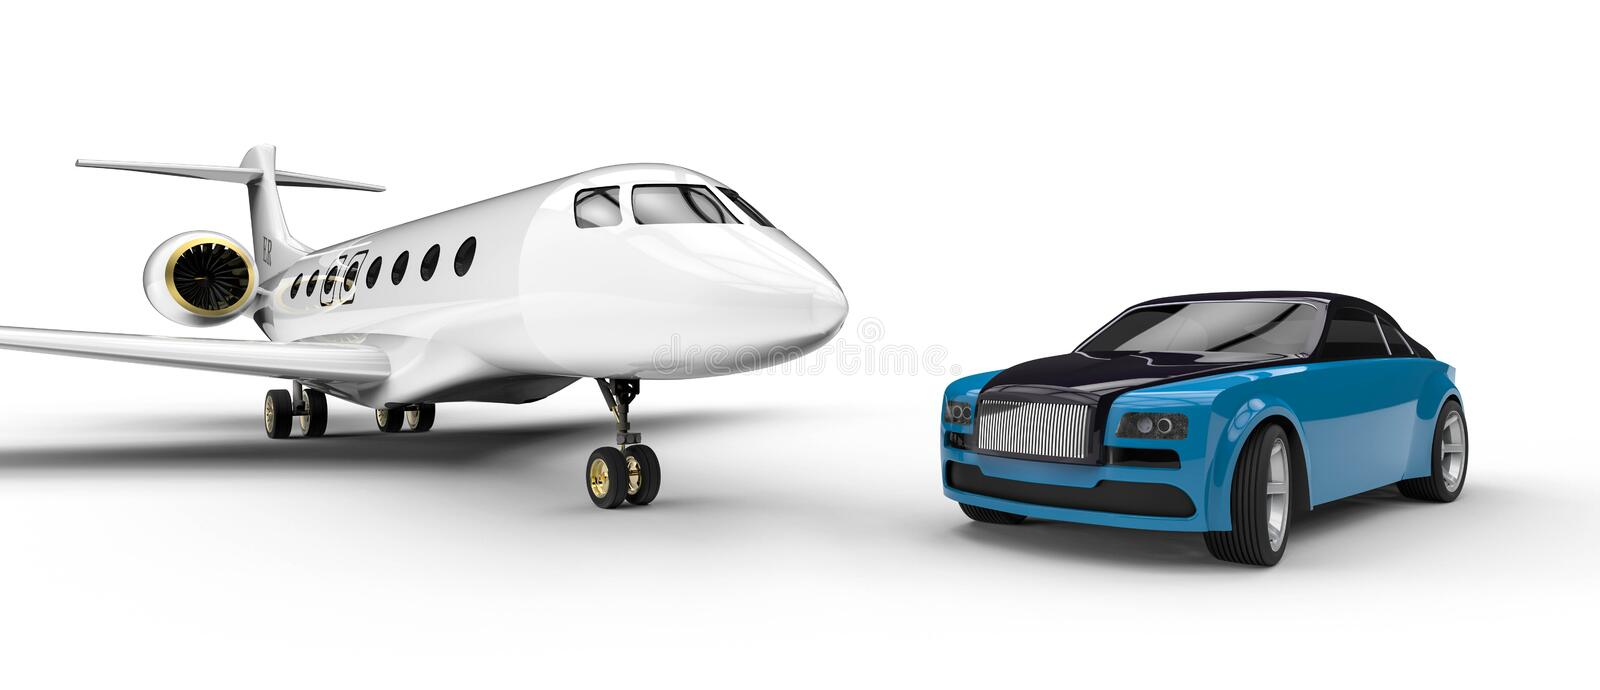 High class rides. 3D render image representing a high class transportation royalty free illustration